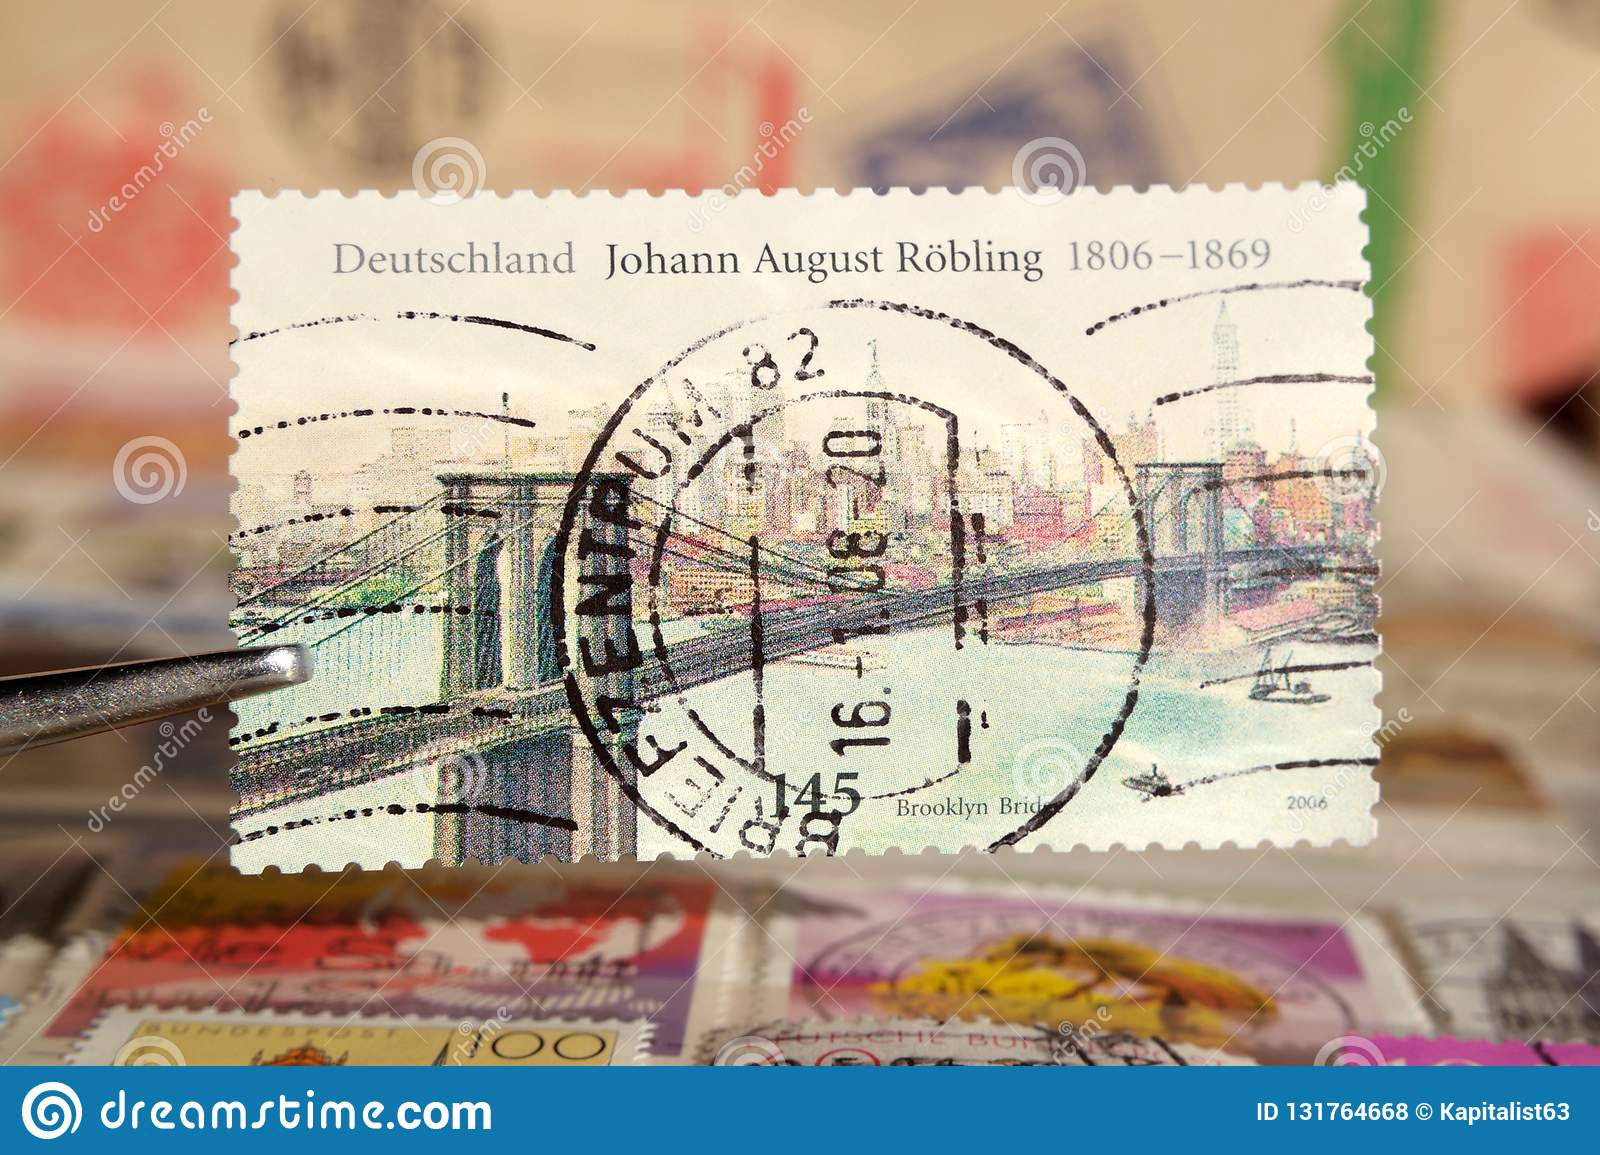 Tweezer holds postage stamp printed by Germany on topic Anniversaries, Shows Johann August